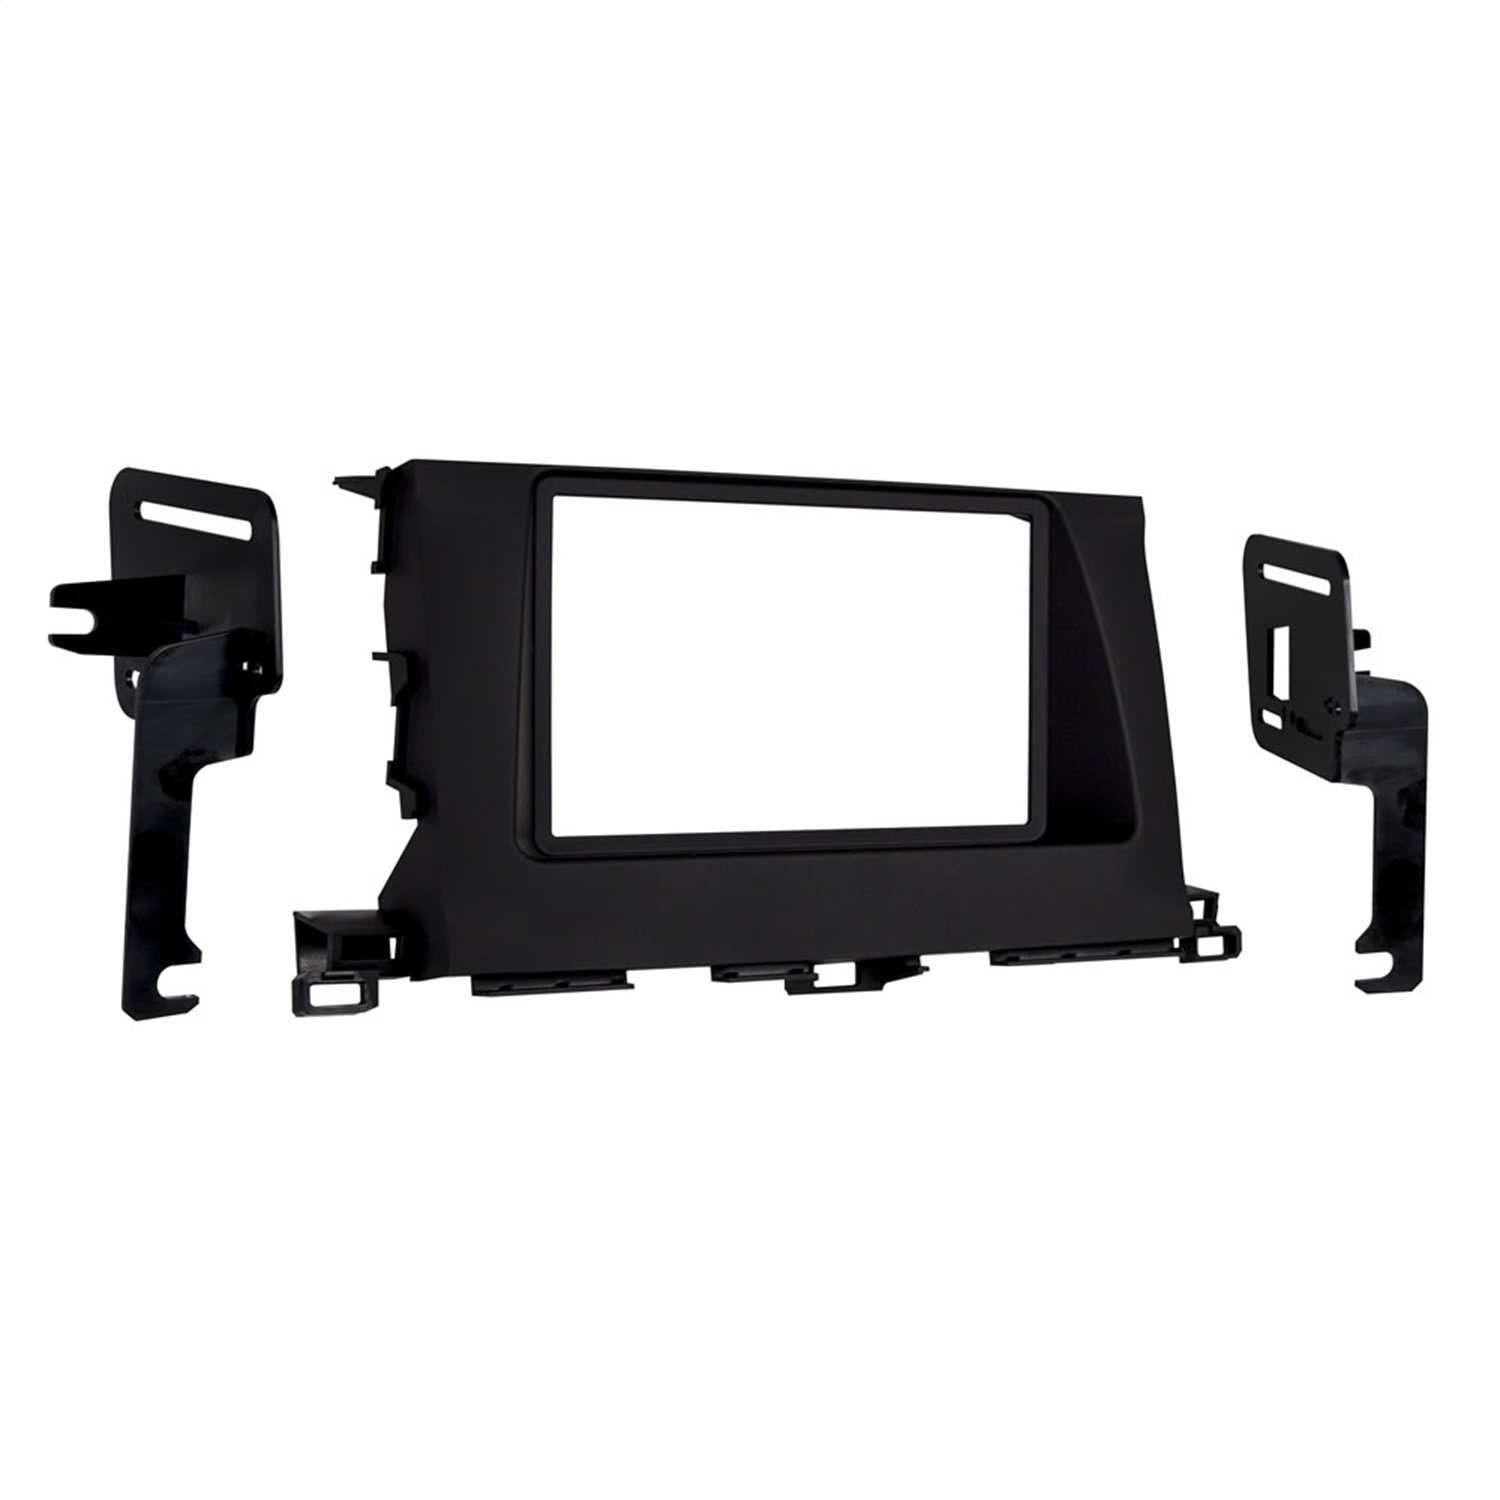 Black Metra 95-8248B Double DIN Dash Kit for Select 2014-Up Toyota Highlander Vehicles